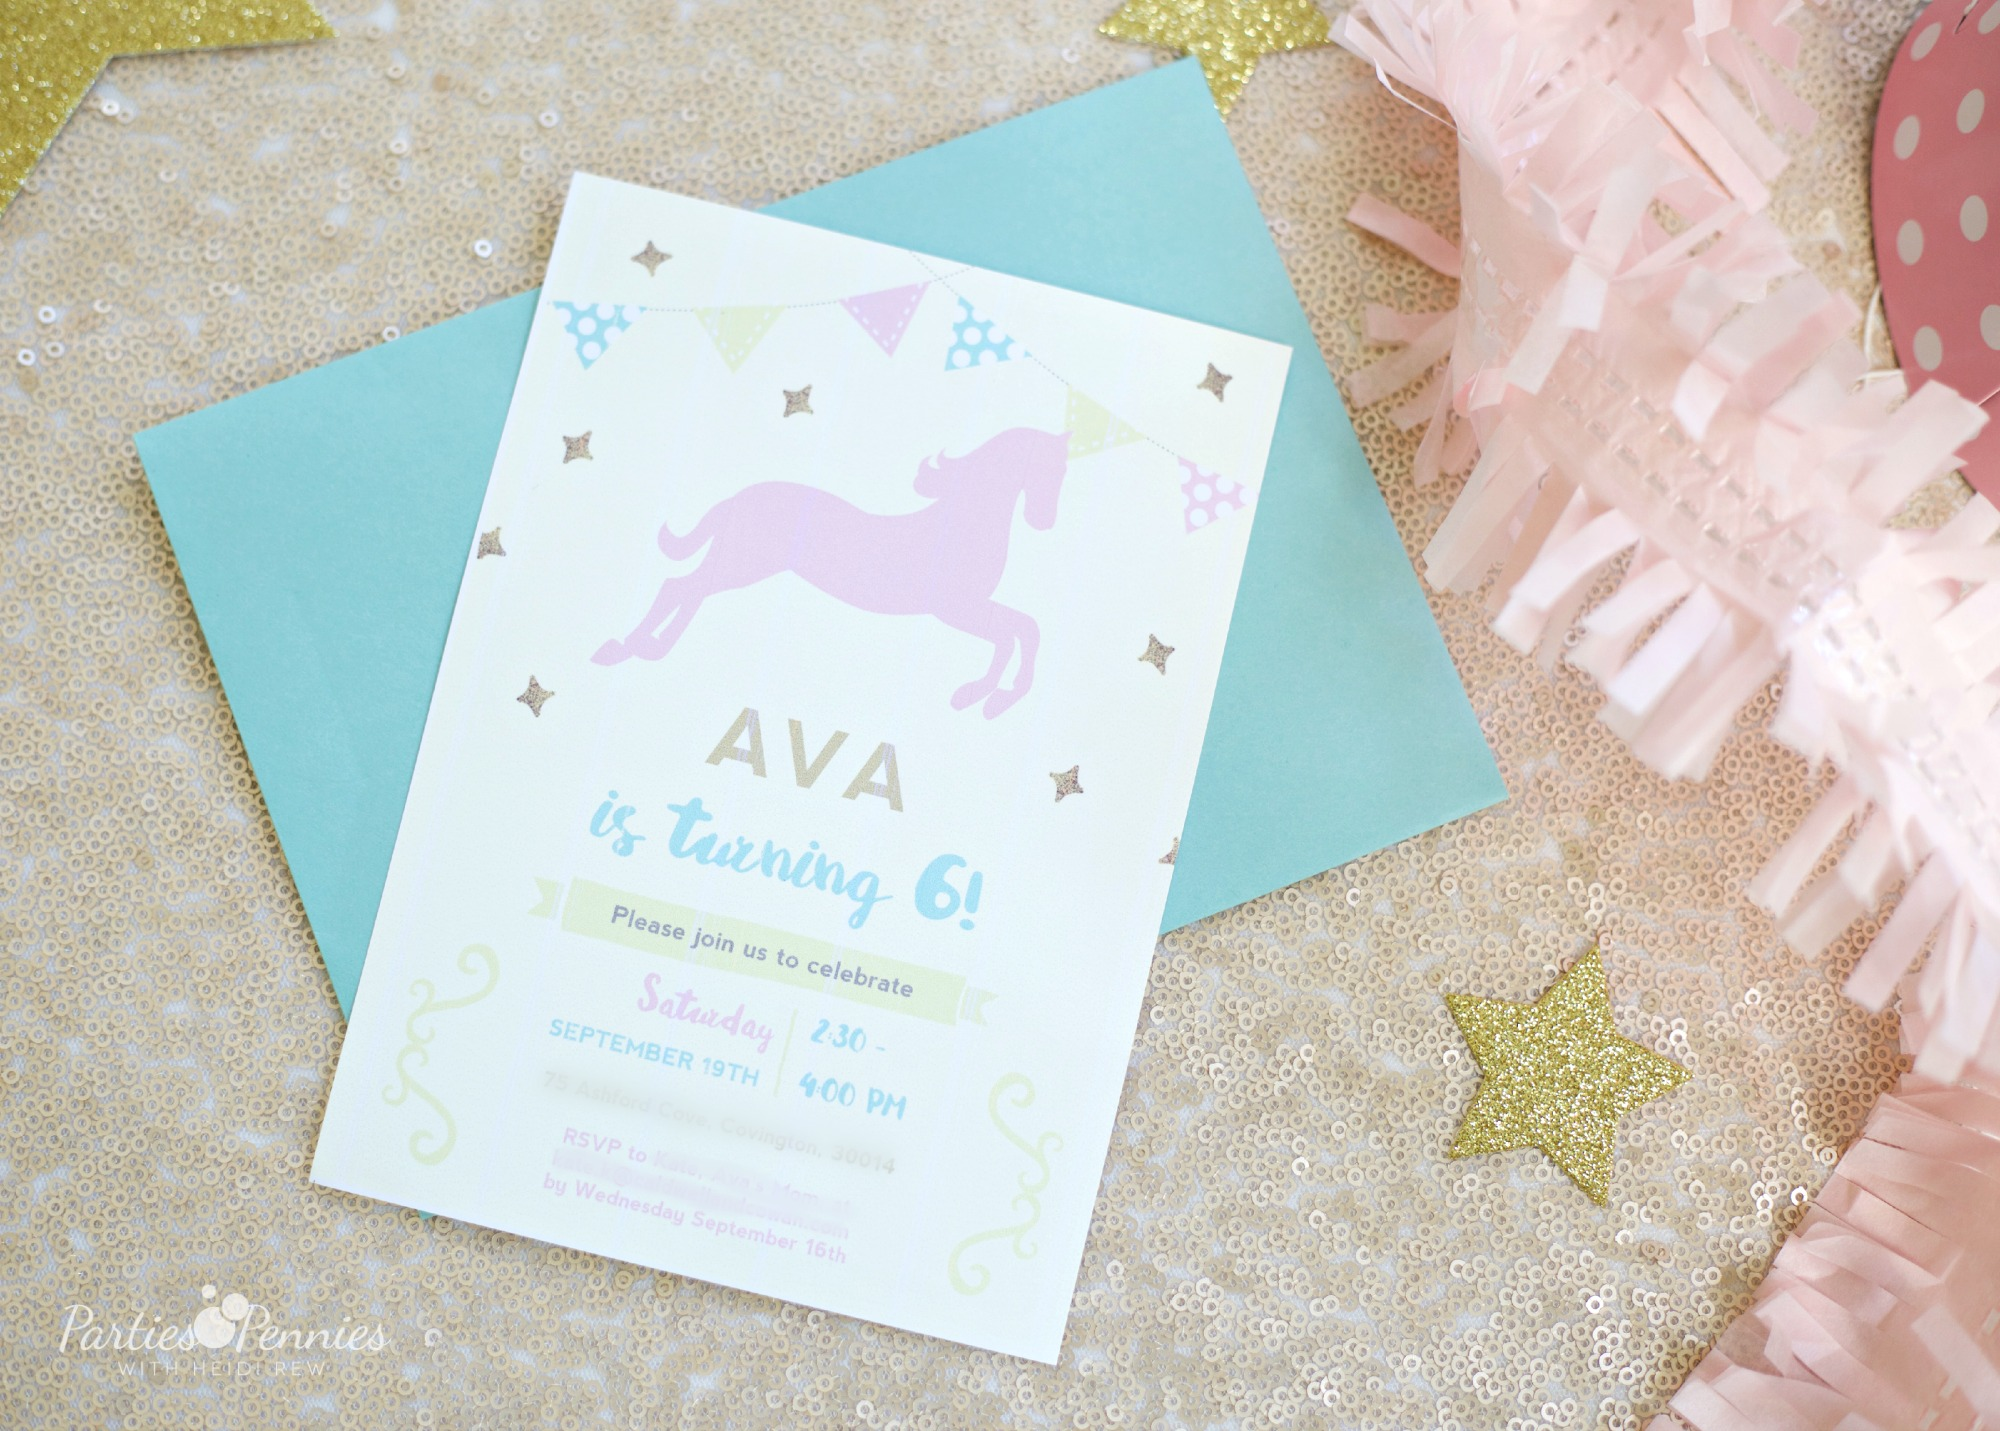 PONY PARTY - Invitations | PartiesforPennies.com | My Little Pony | Pinkie Pie | Girl Birthday Party